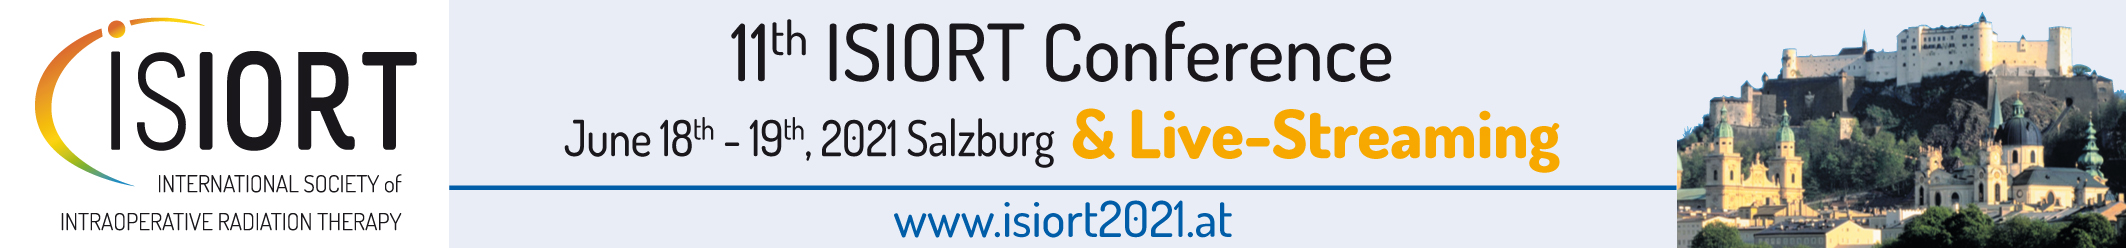 11th ISIORT Conference